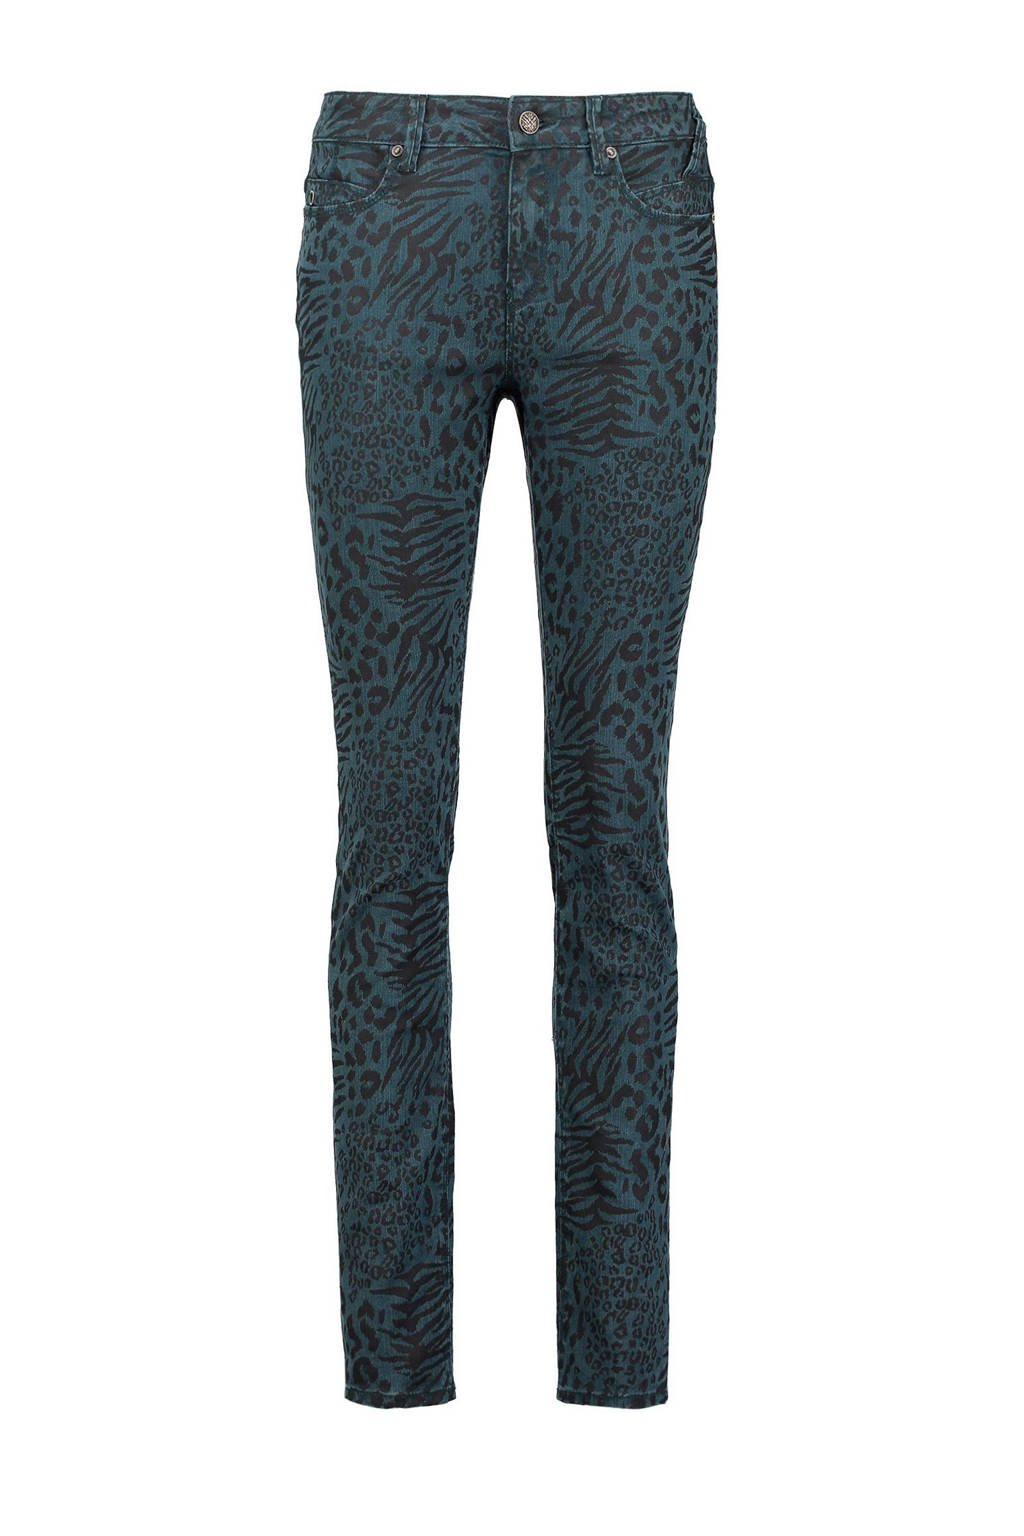 Claudia Sträter skinny fit broek, Petrol Green